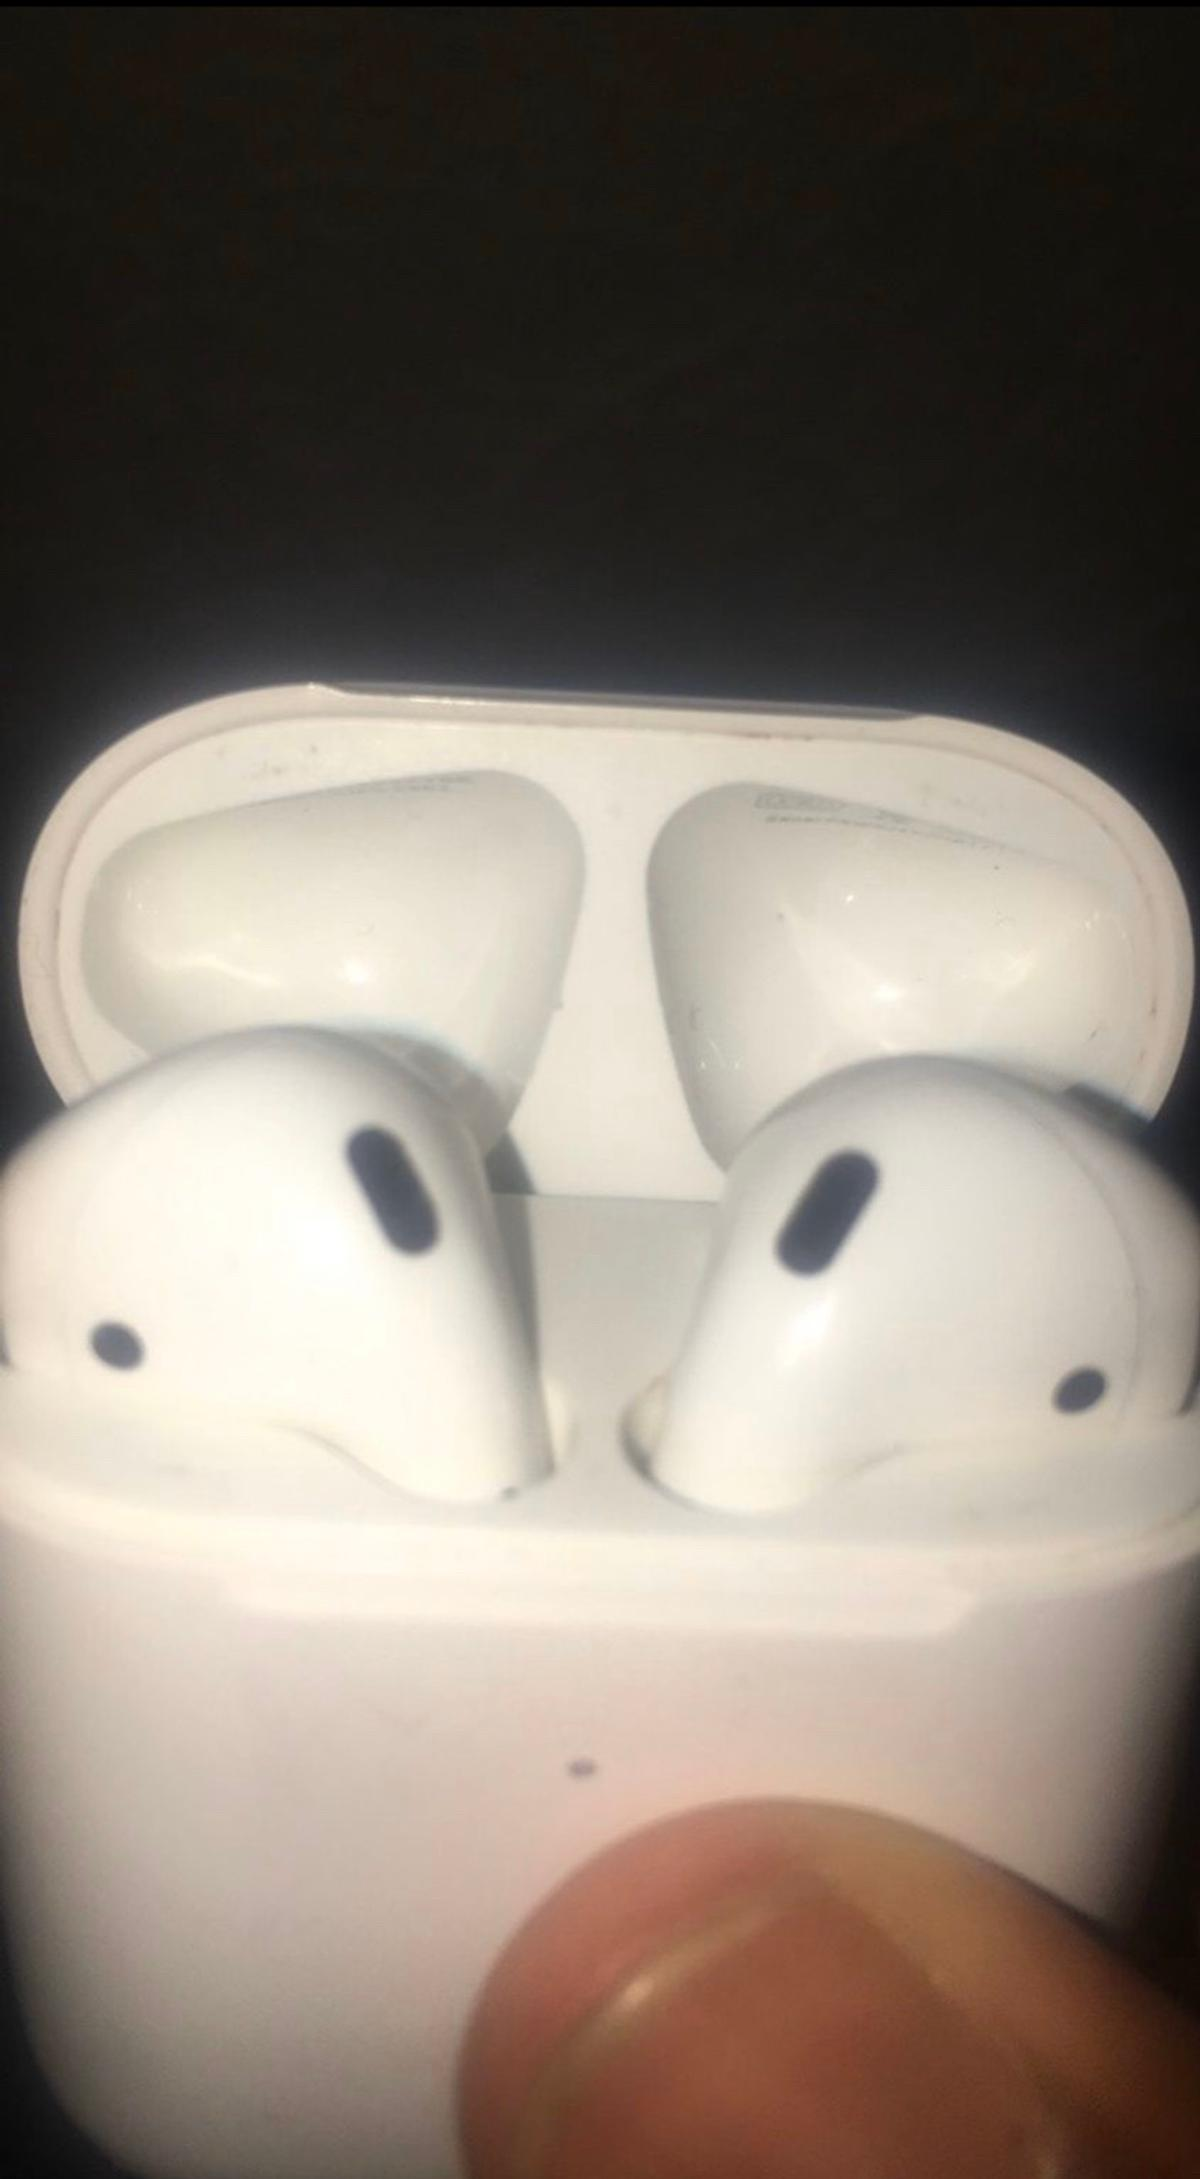 AirPod Gen 2 Great condition works perfectly (price negotiable)